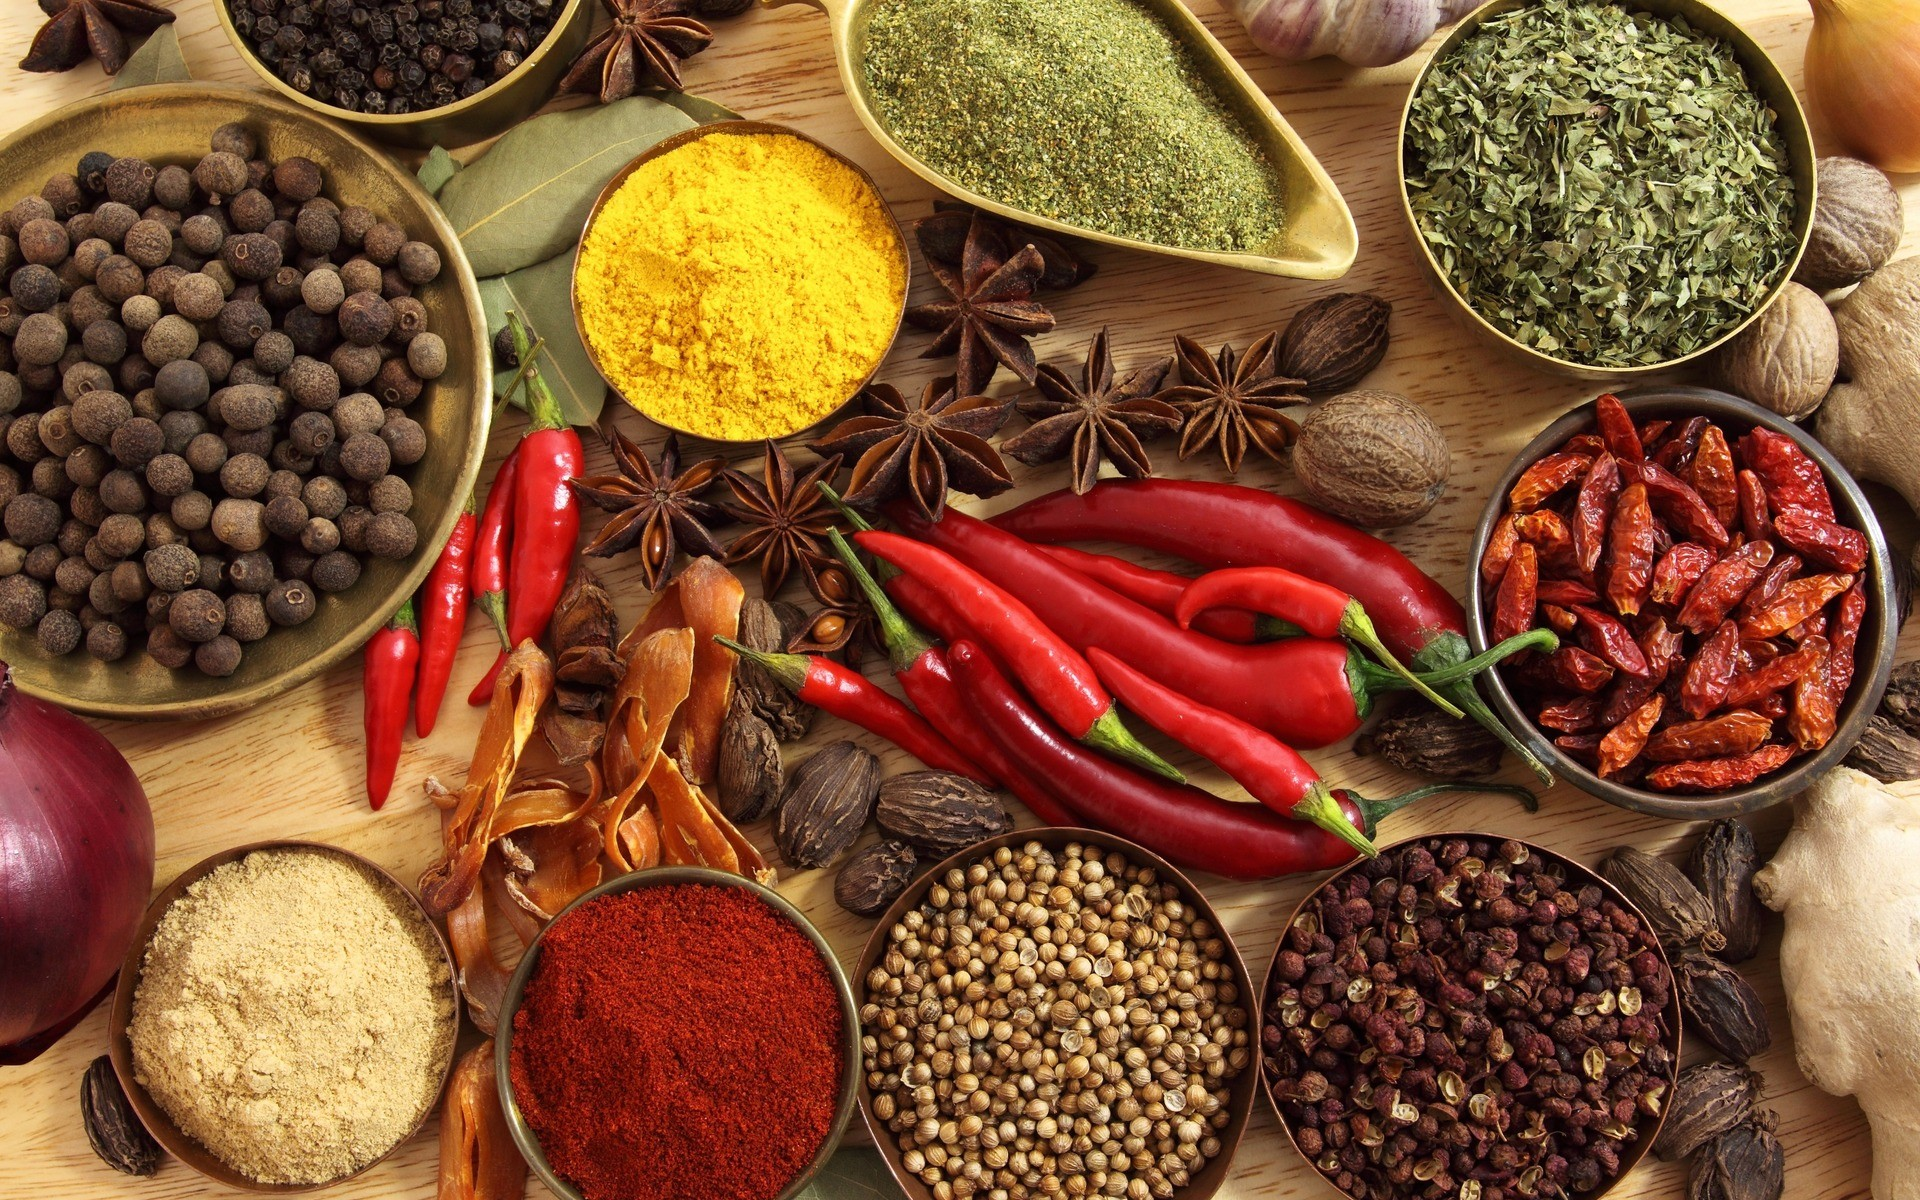 Top 10 Food Products Prone To Adulteration In India